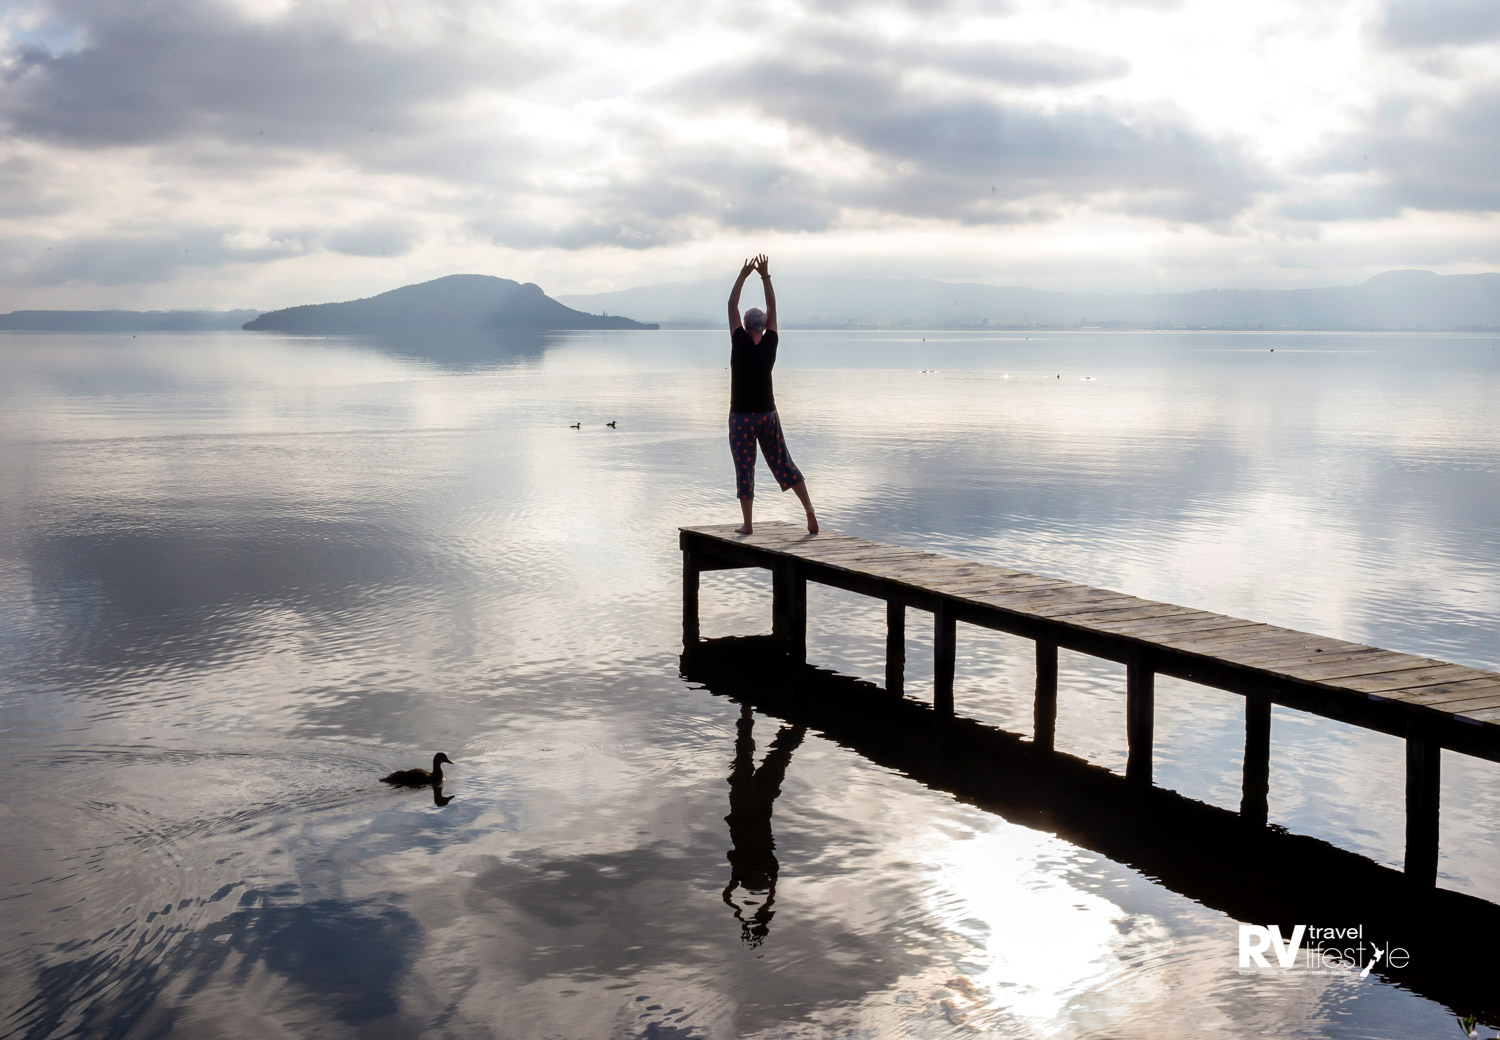 Clare embraces the morning at Lake Rotorua